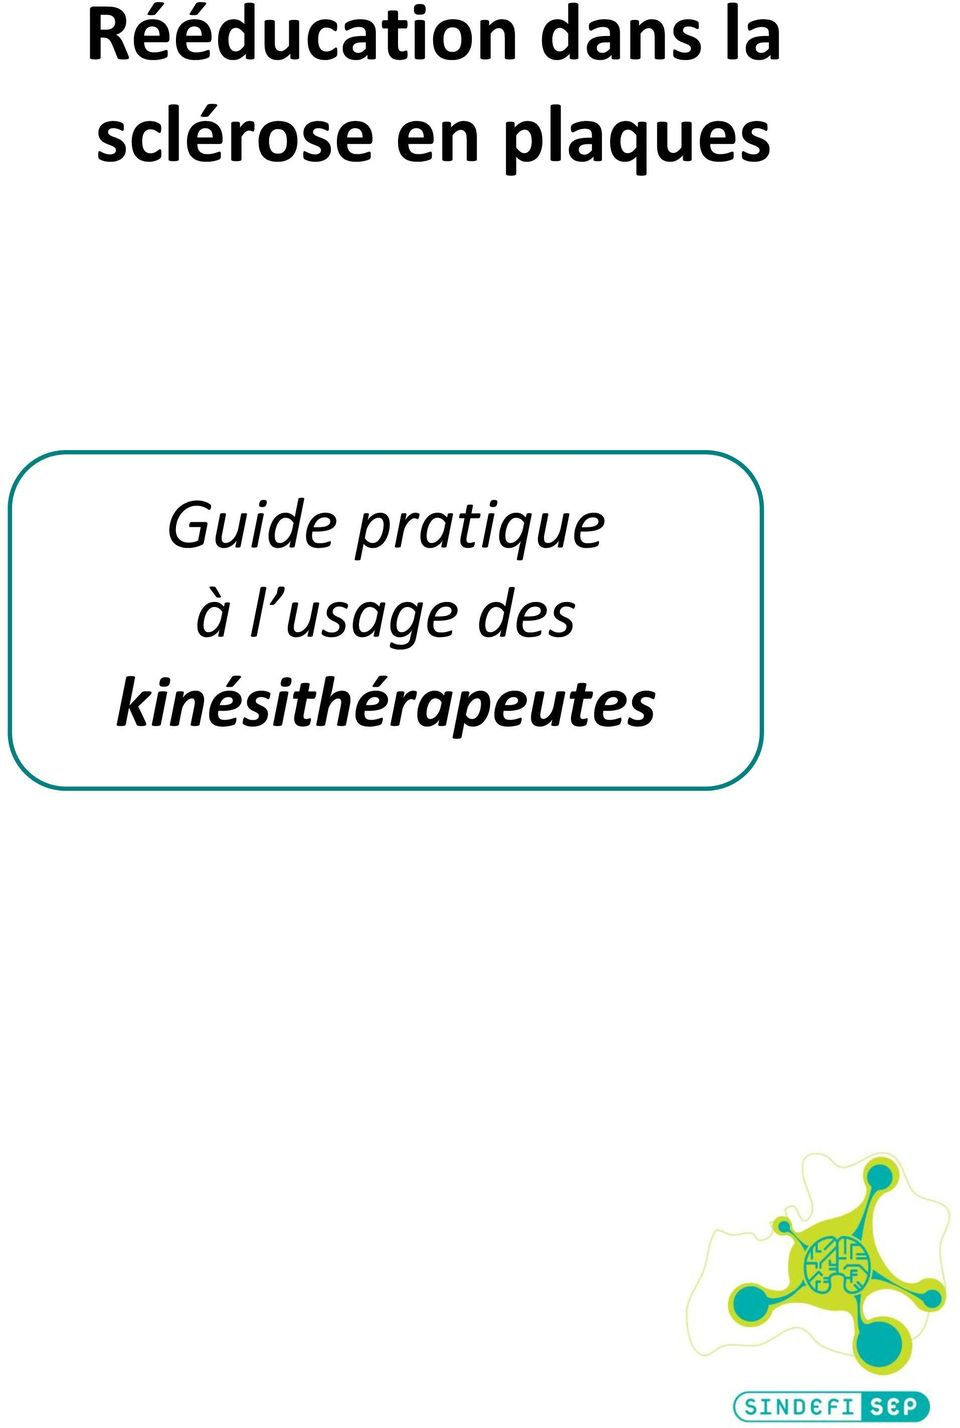 Guide pratique à l